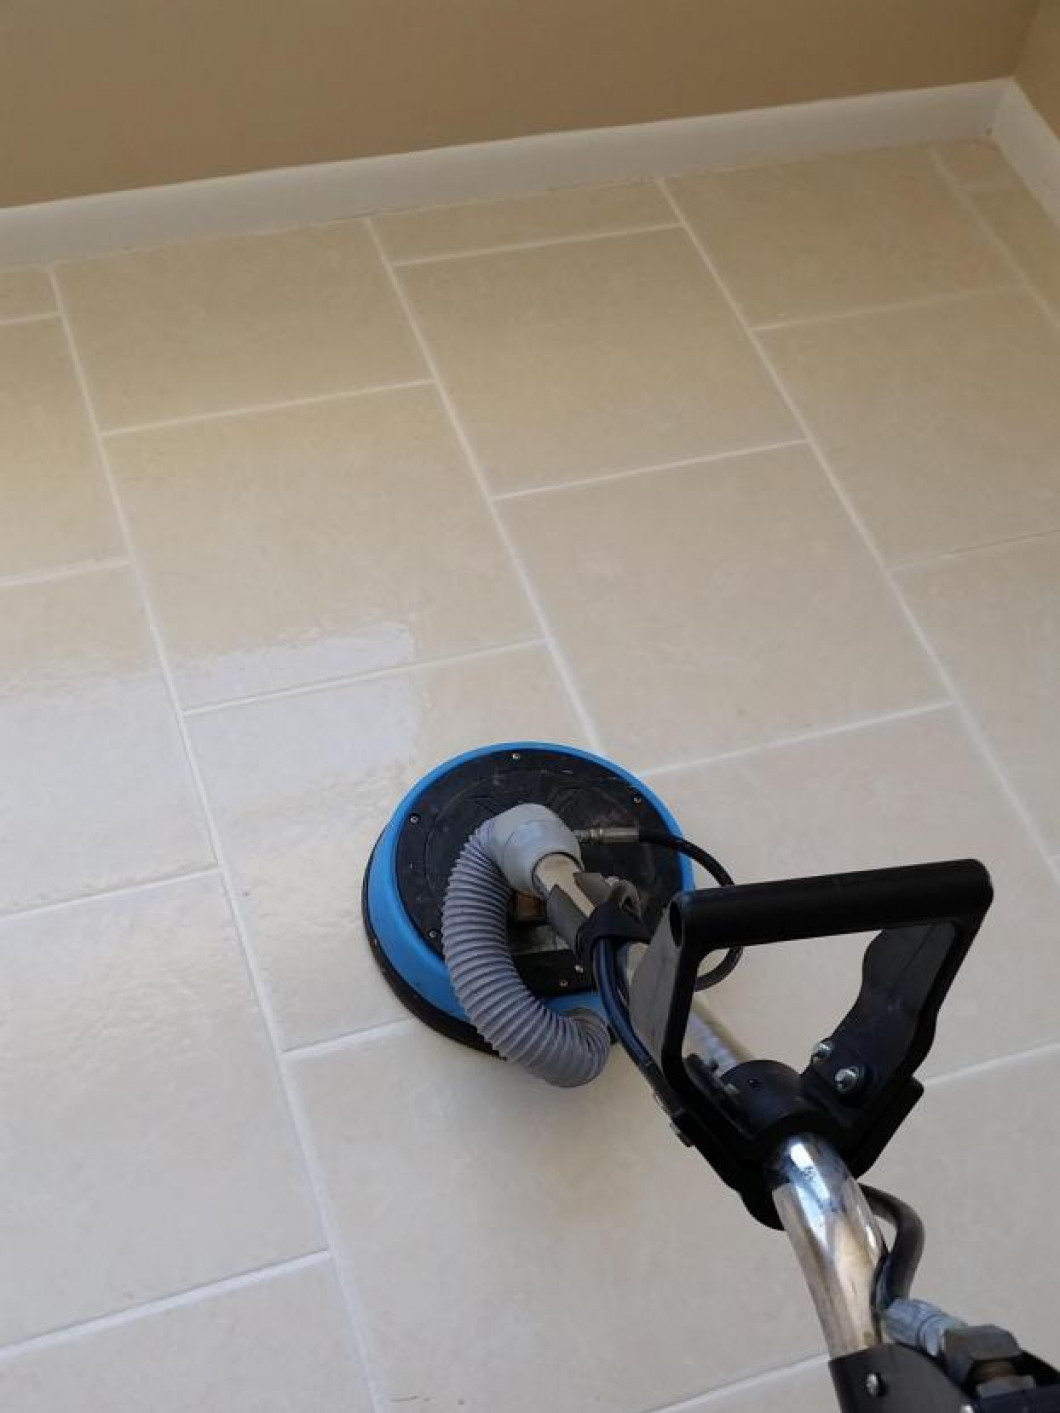 Get reliable cleaning services on your own terms